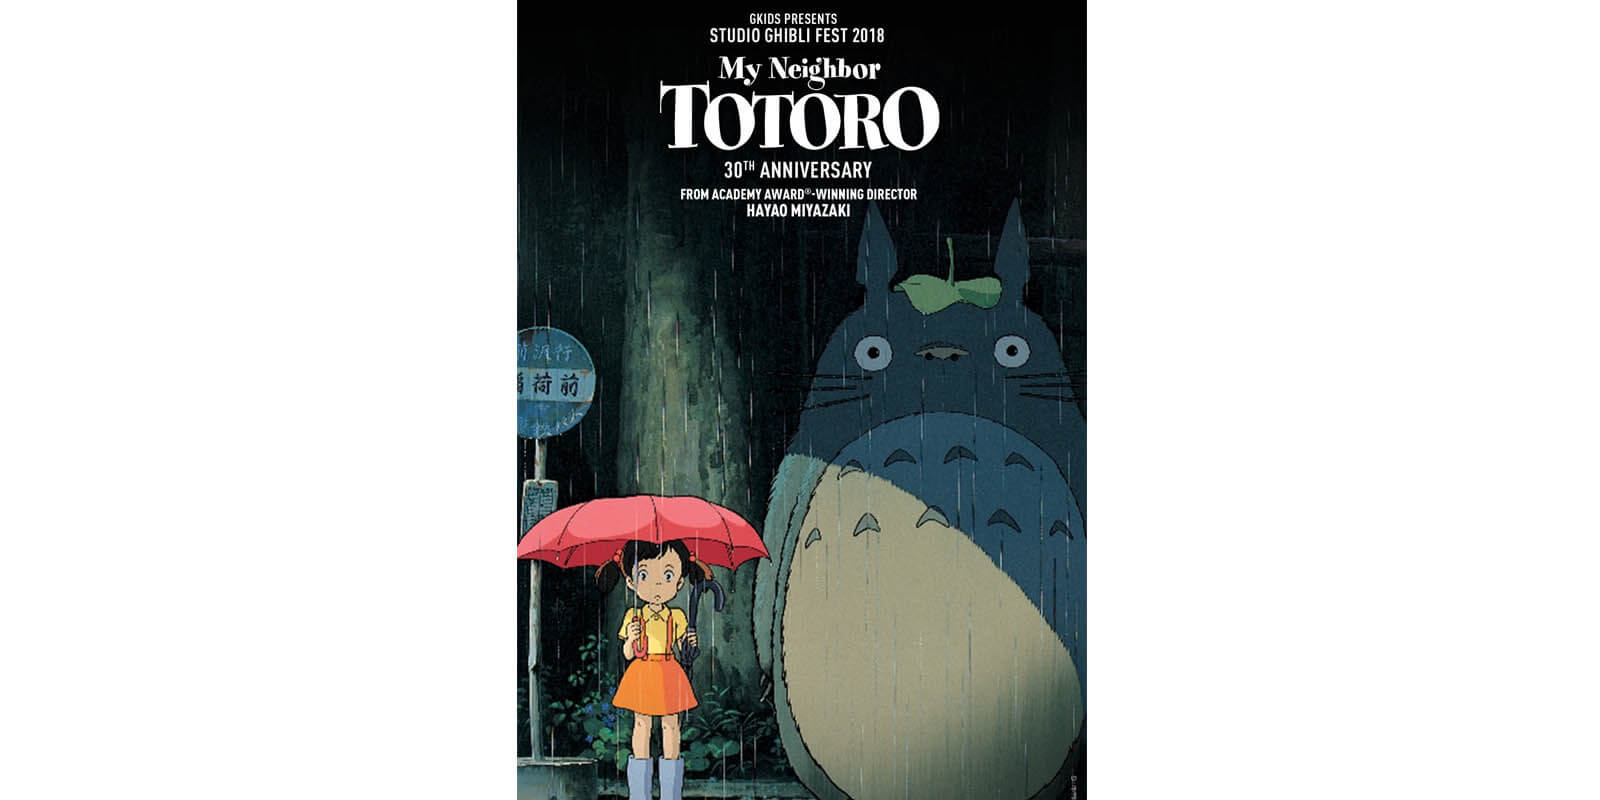 My Neighbor Totoro (Studio Ghibli Fest 2018)